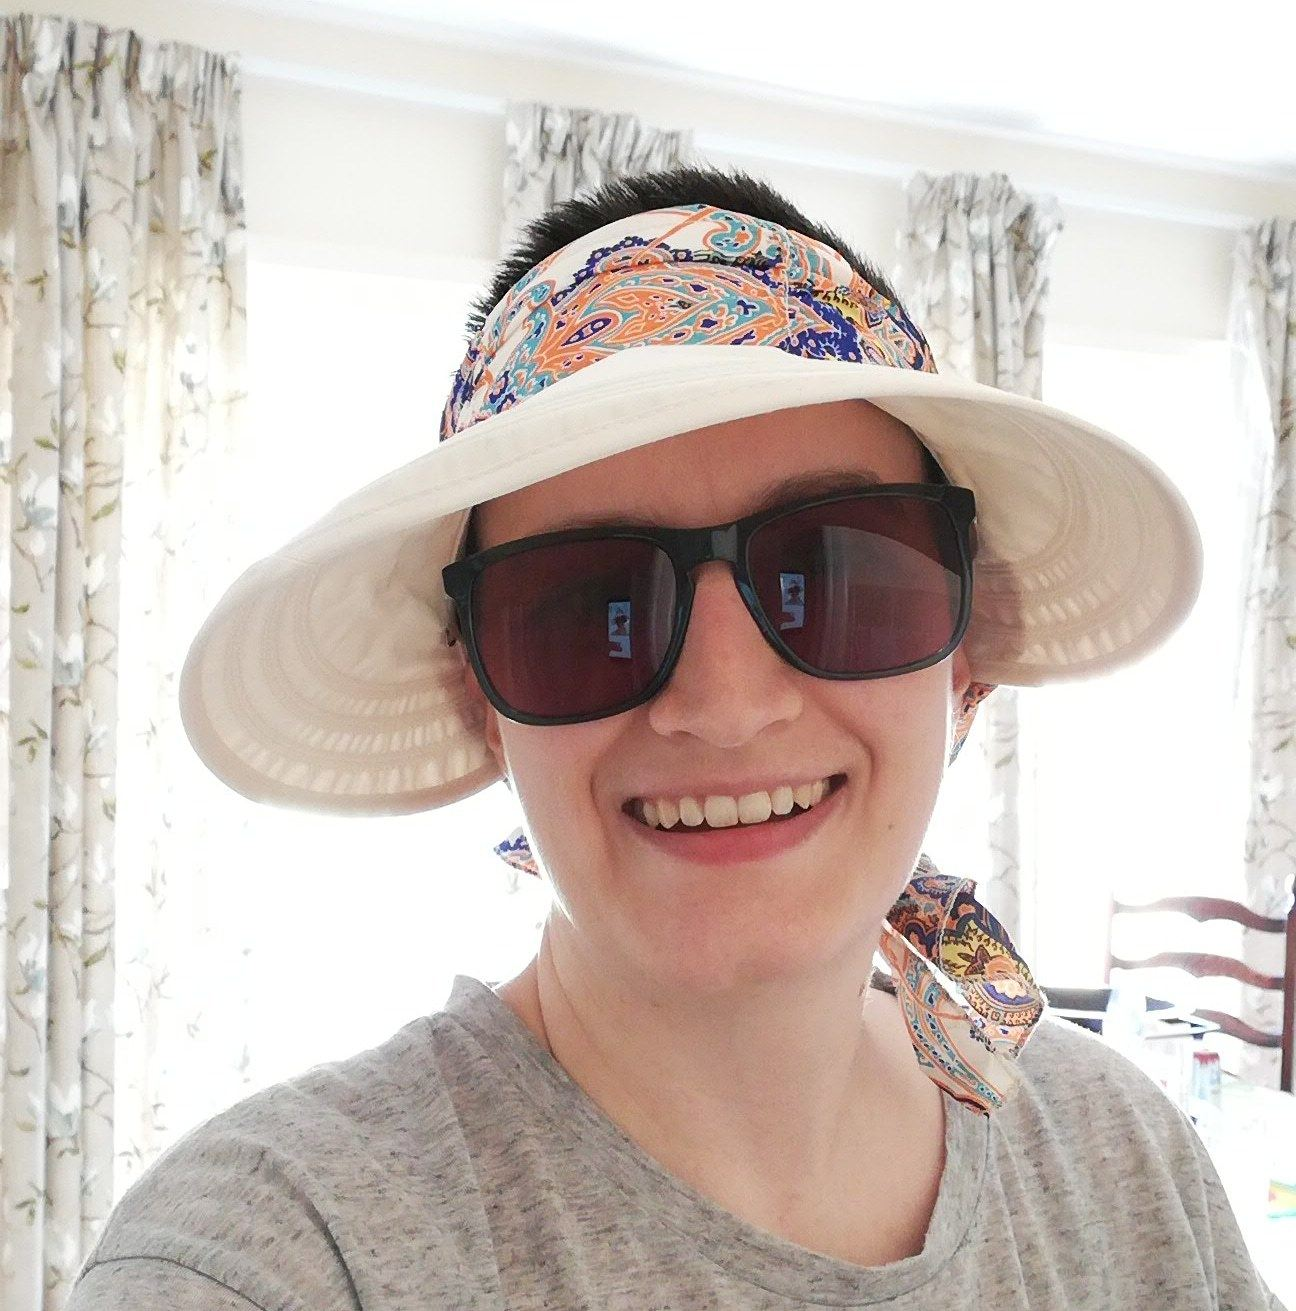 Char wearing a wide-rimmed summer hat and sunglasses. There are large windows behind her with floral curtains hanging.